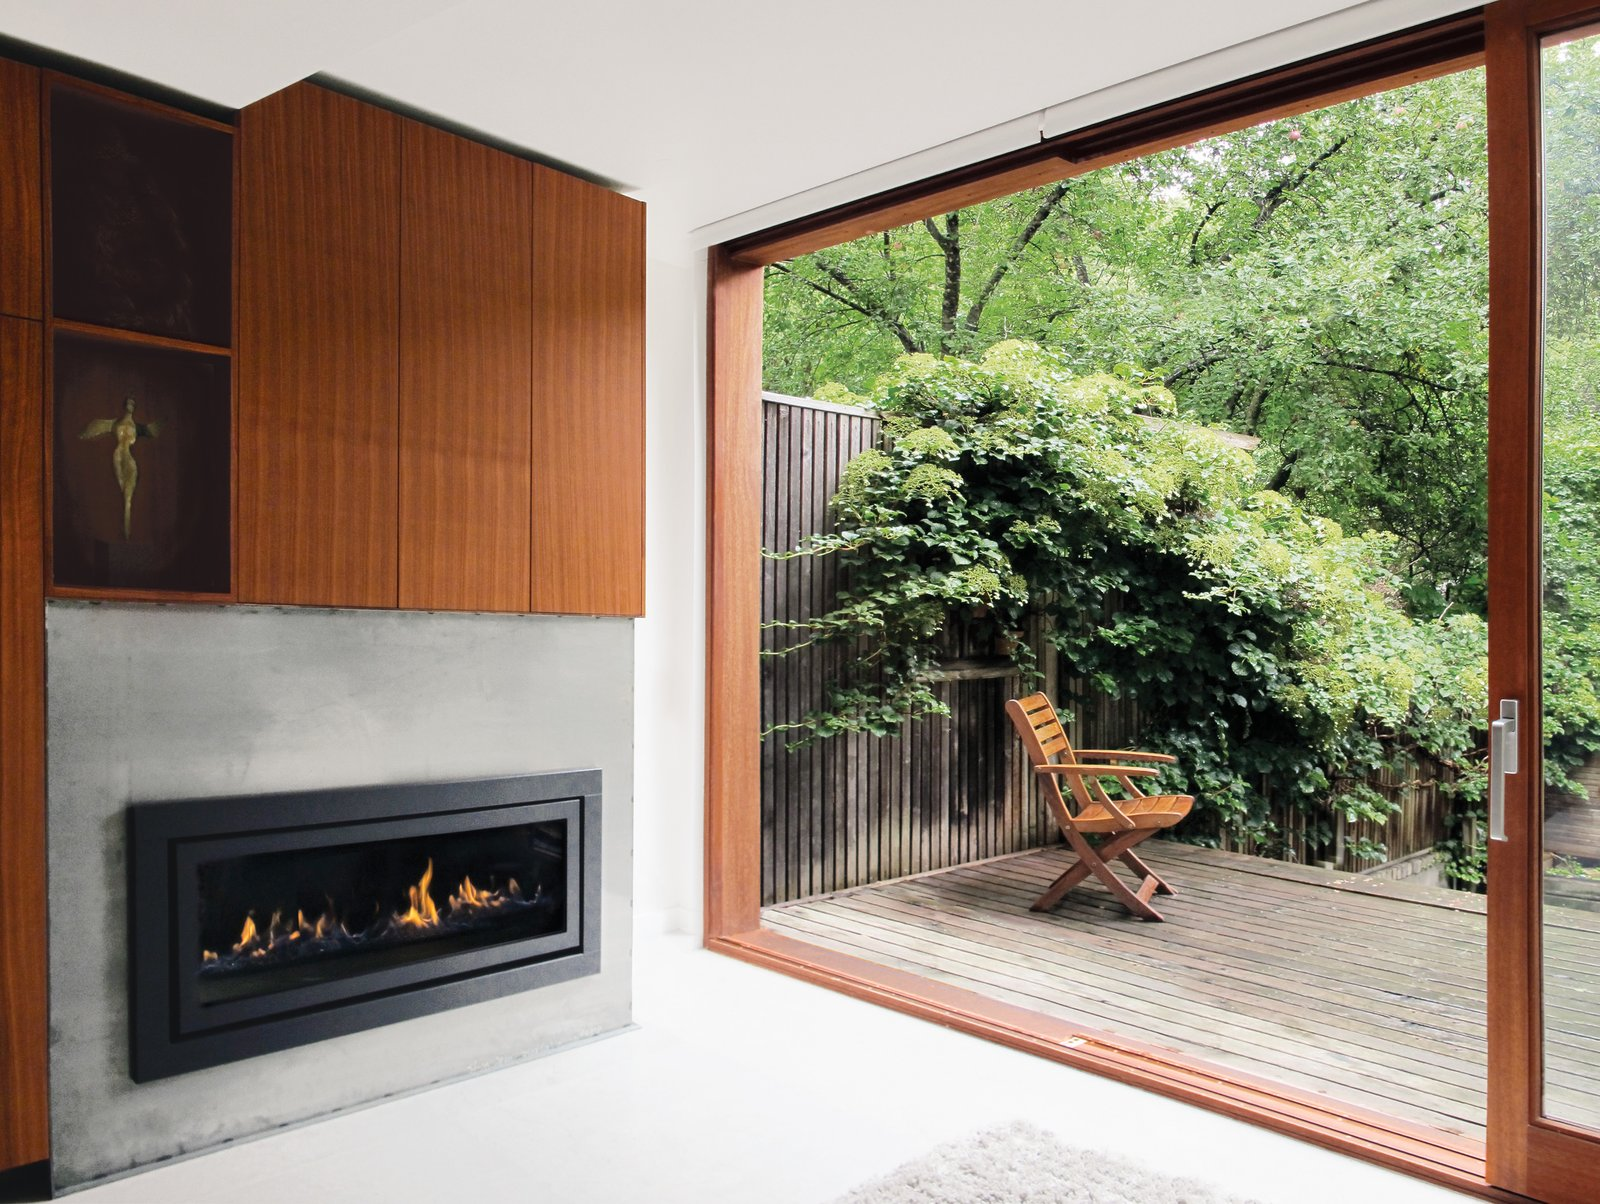 Doors, Exterior, Wood, and Sliding Door Type Mandel designed a six-by-eight-foot extension for additional space on the ground floor.  97+ Modern Fireplace Ideas from Reinventing a Traditional Edwardian near Lake Ontario